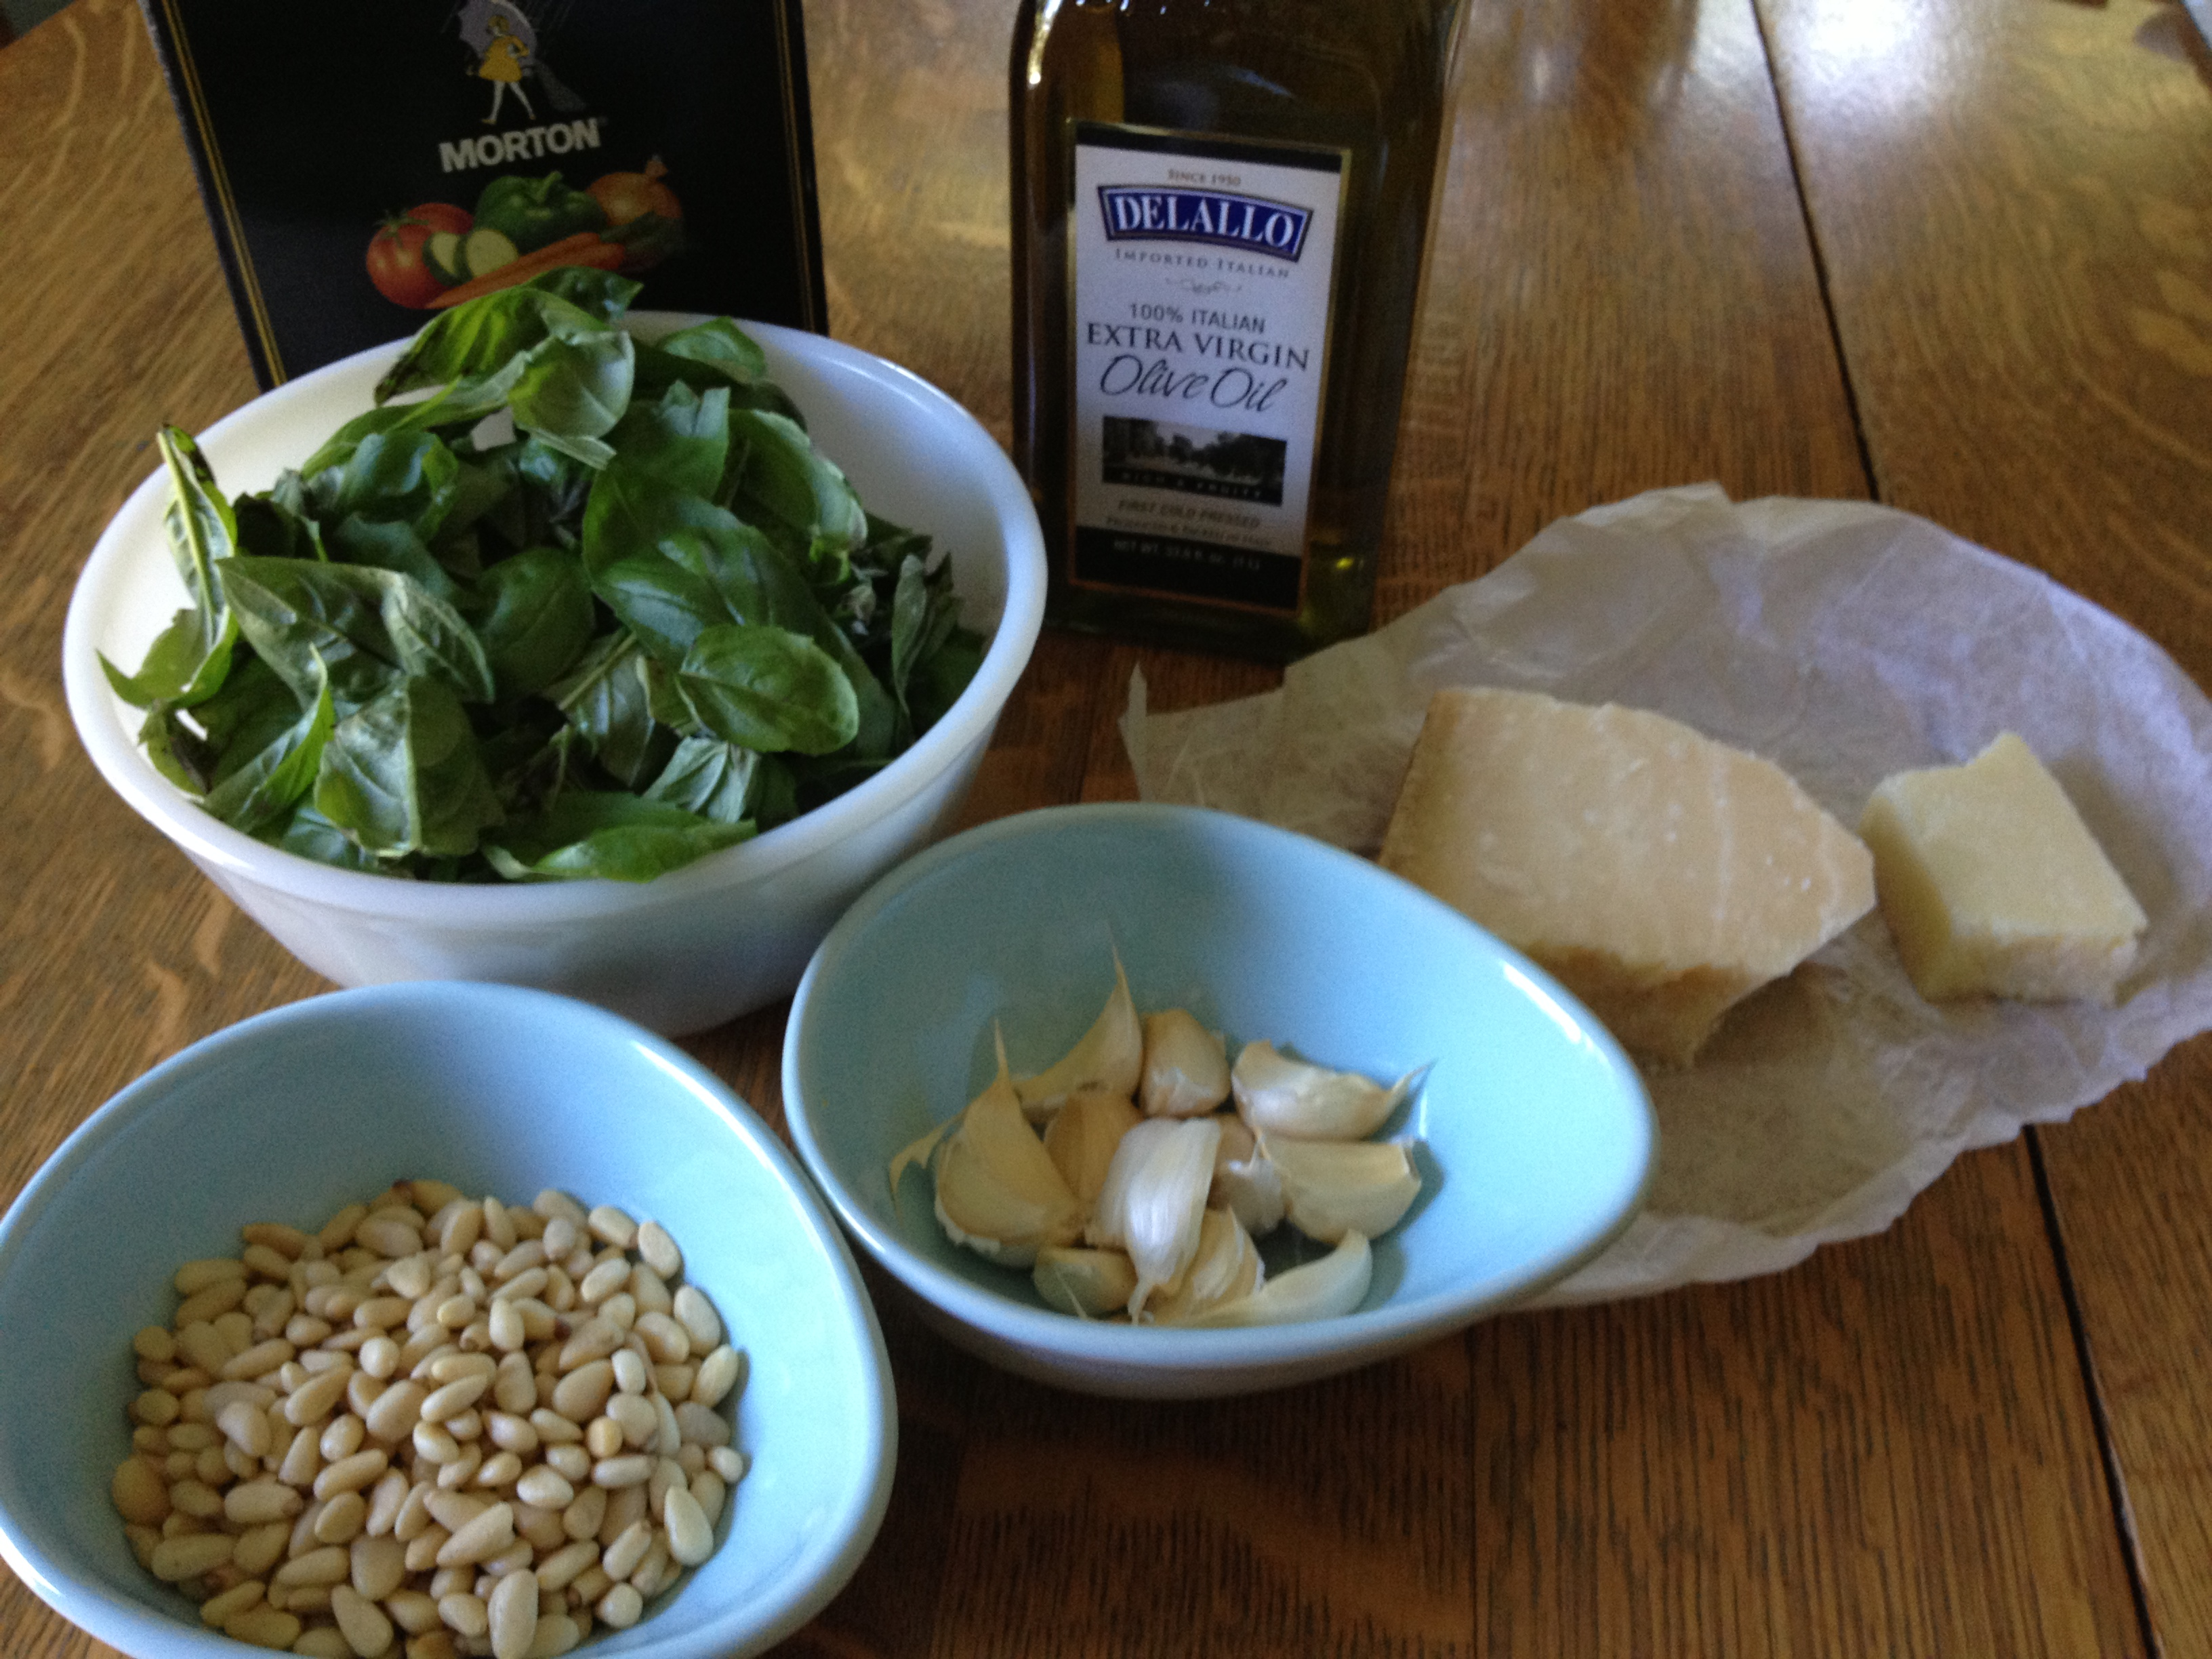 All the ingredients you need to make pesto!